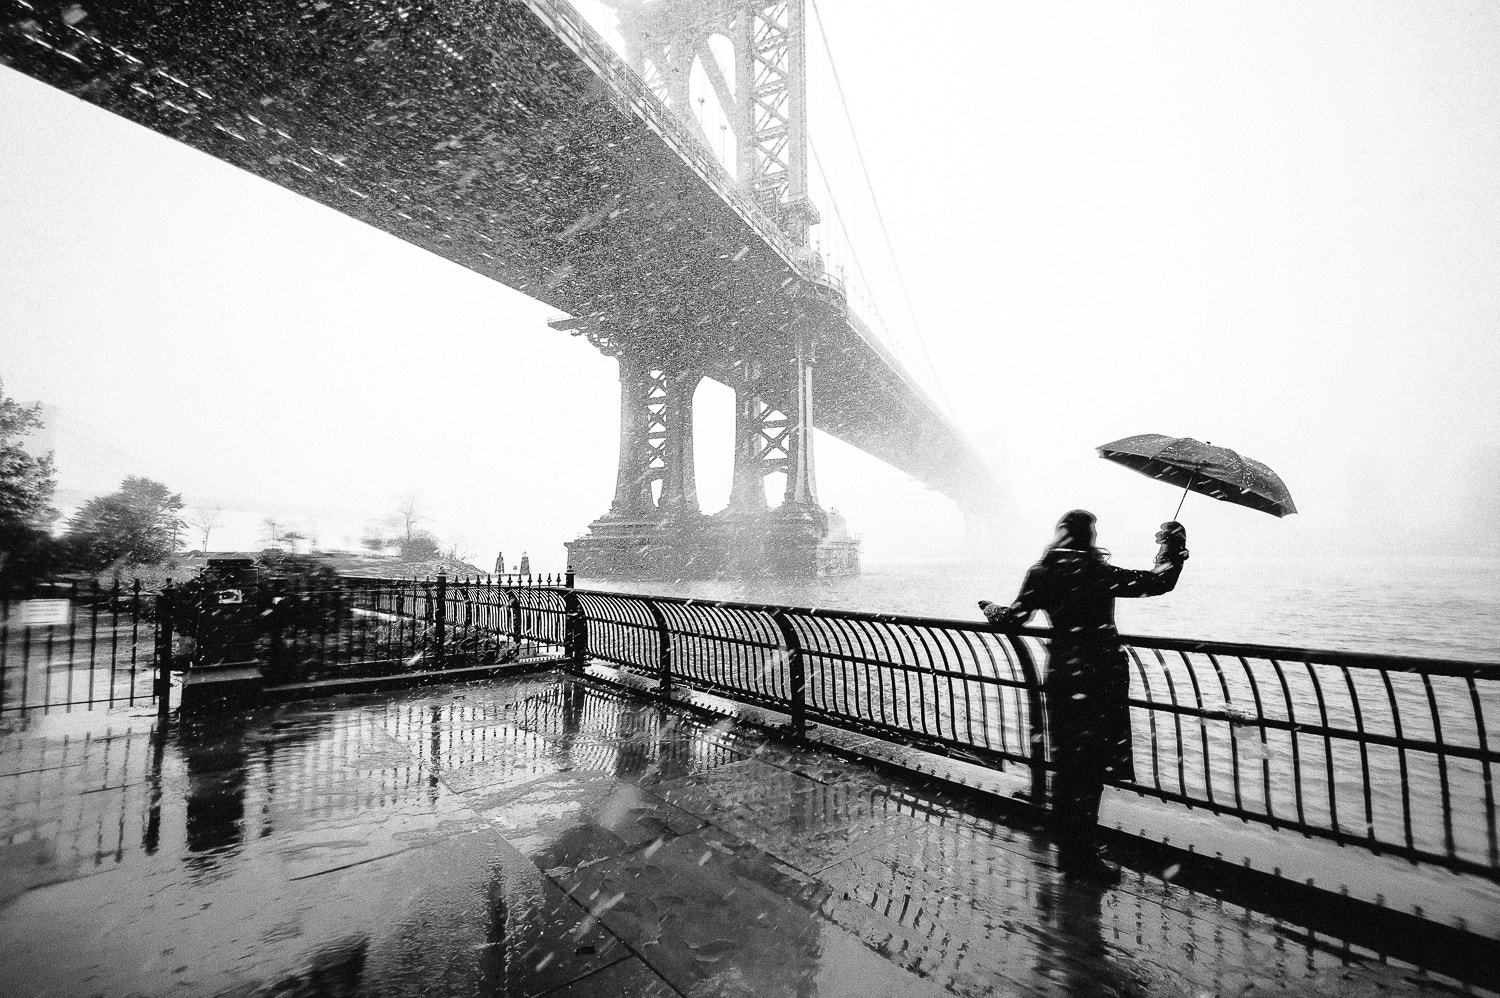 Photograph New York snow storm by Guillaume Gaudet on 500px